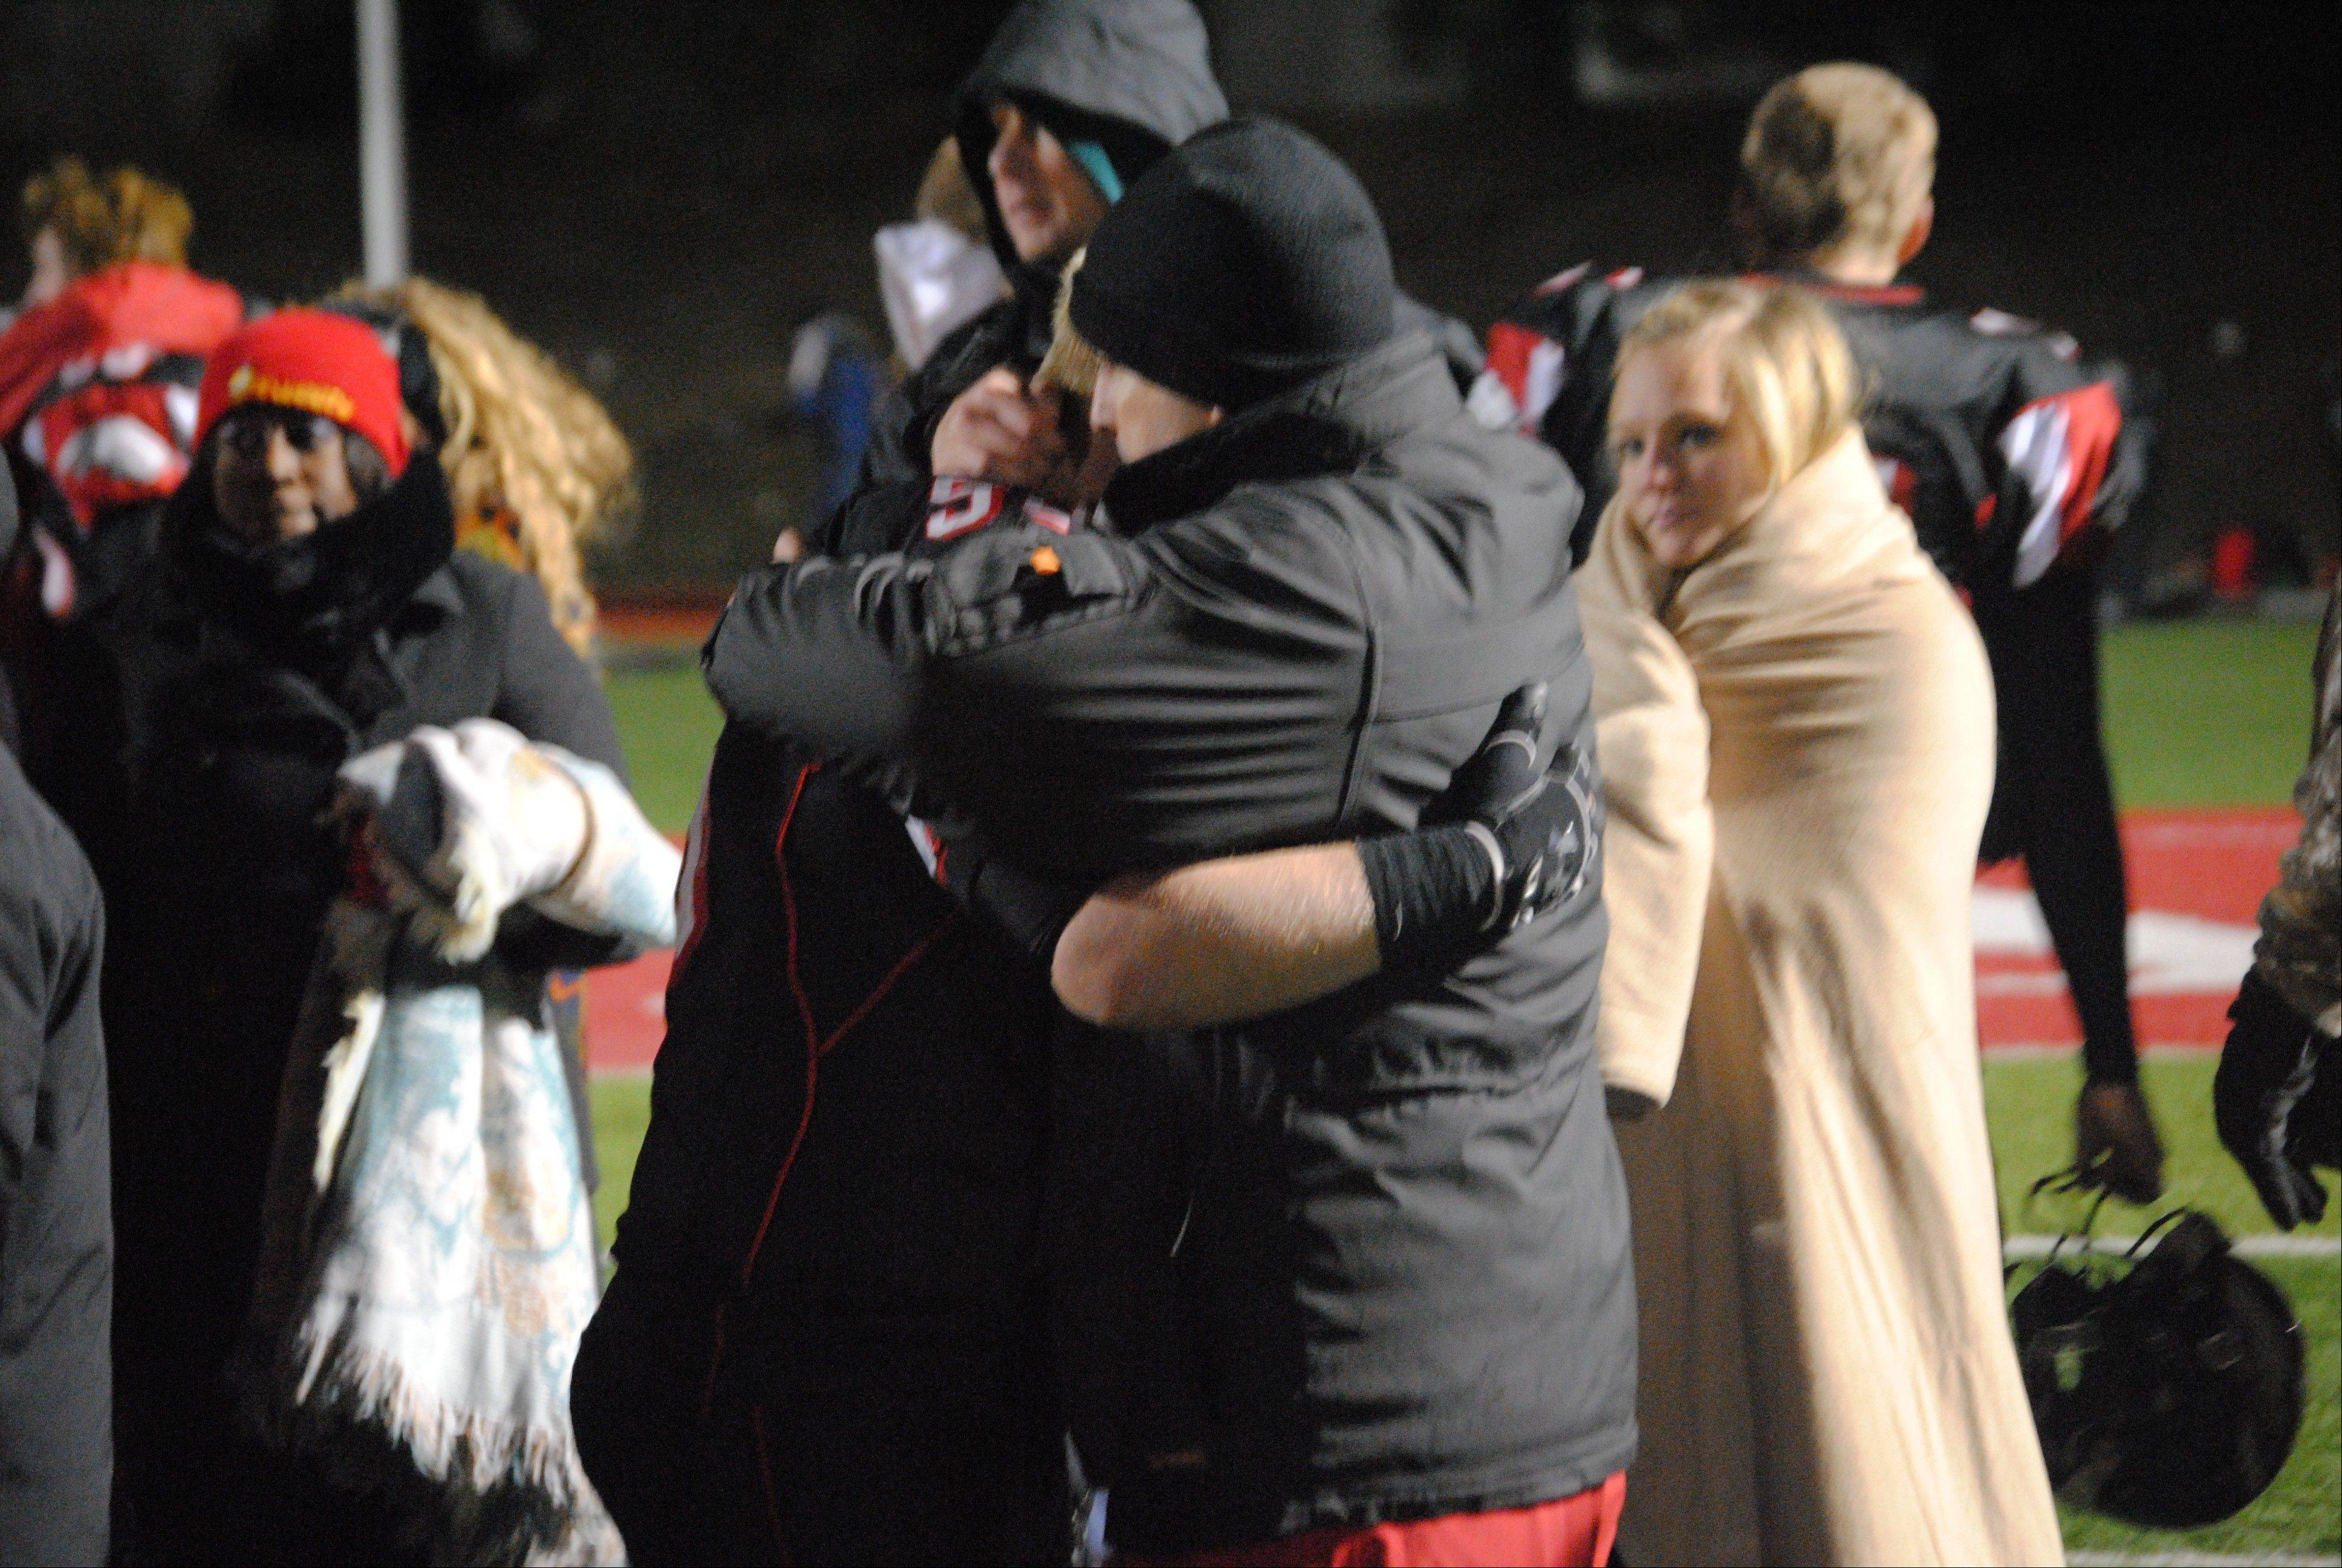 Aurora Christian senior center Tristin Withrow is consoled by an assistant coach moments after the Eagles' 28-26 Class 3A state semifinal loss to Stillman Valley Saturday in Aurora.